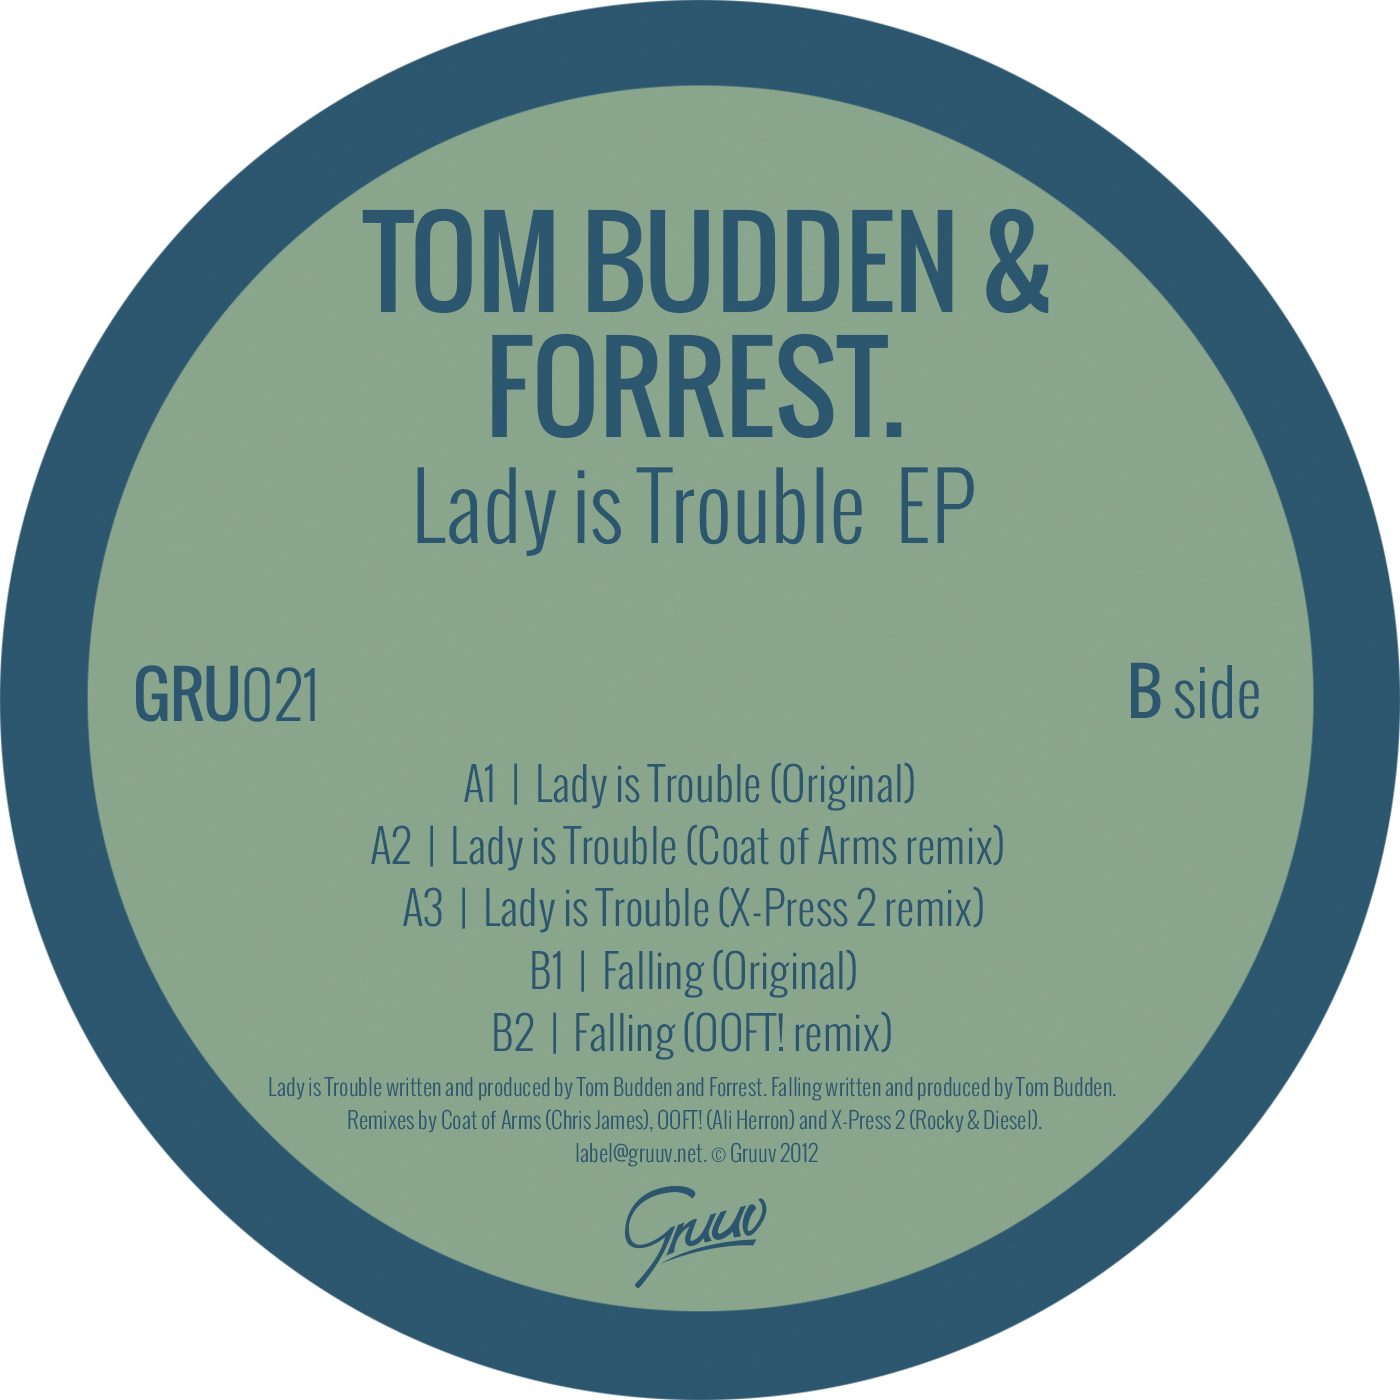 Lady is Trouble EP - Tom Budden & Forrest